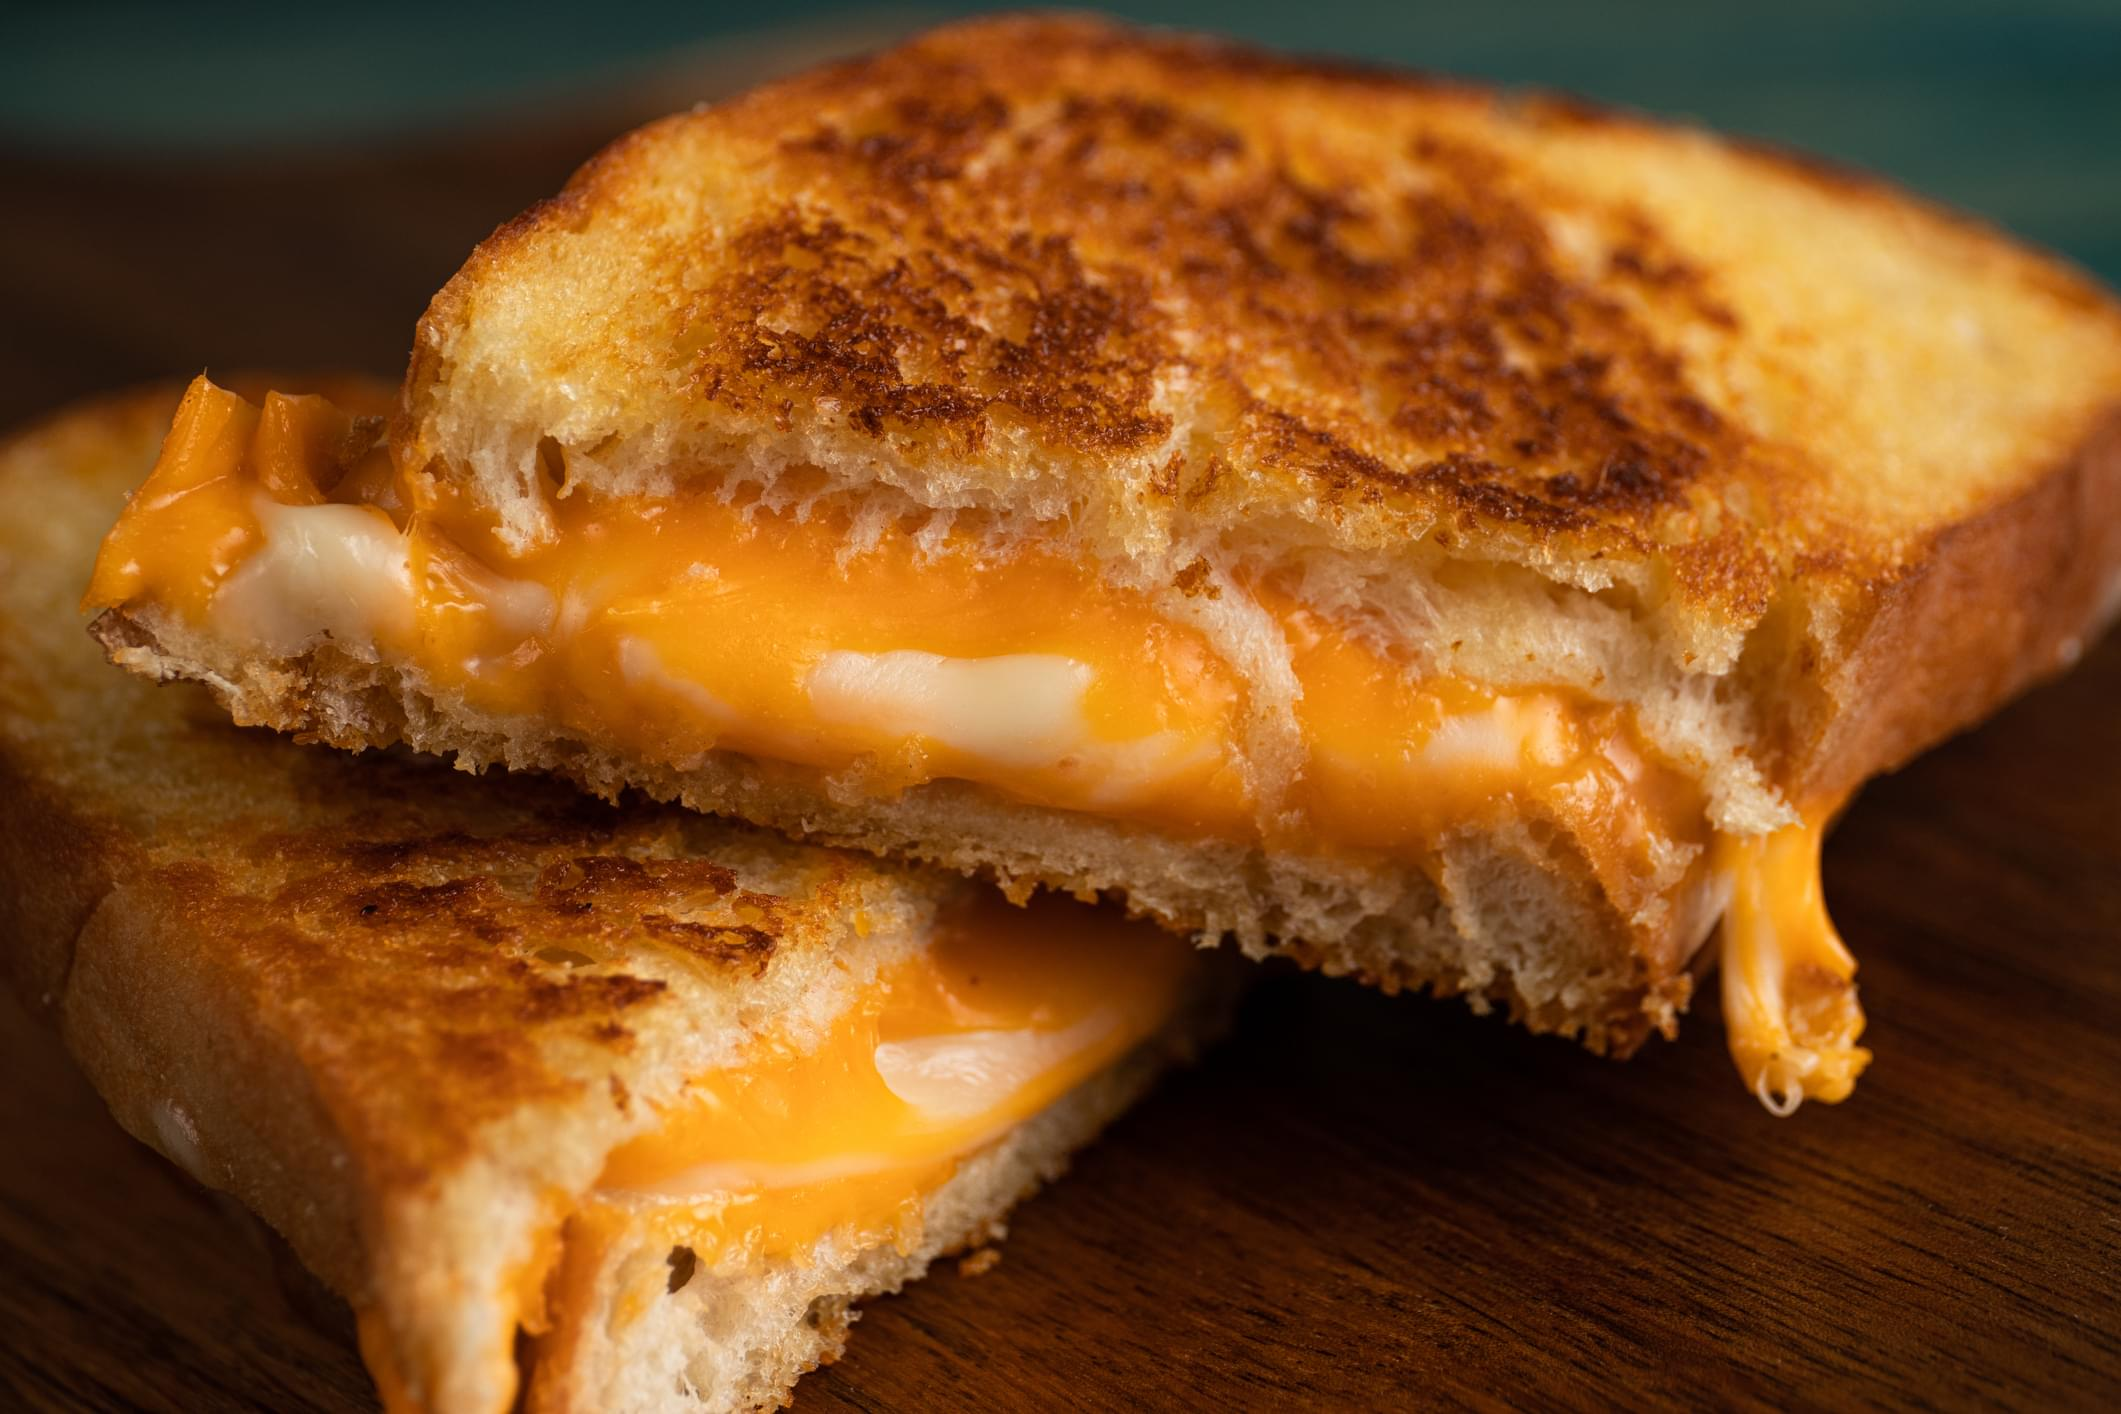 PODCAST – Wednesday, July 15: Mustard On A Grilled Cheese? Y/N?